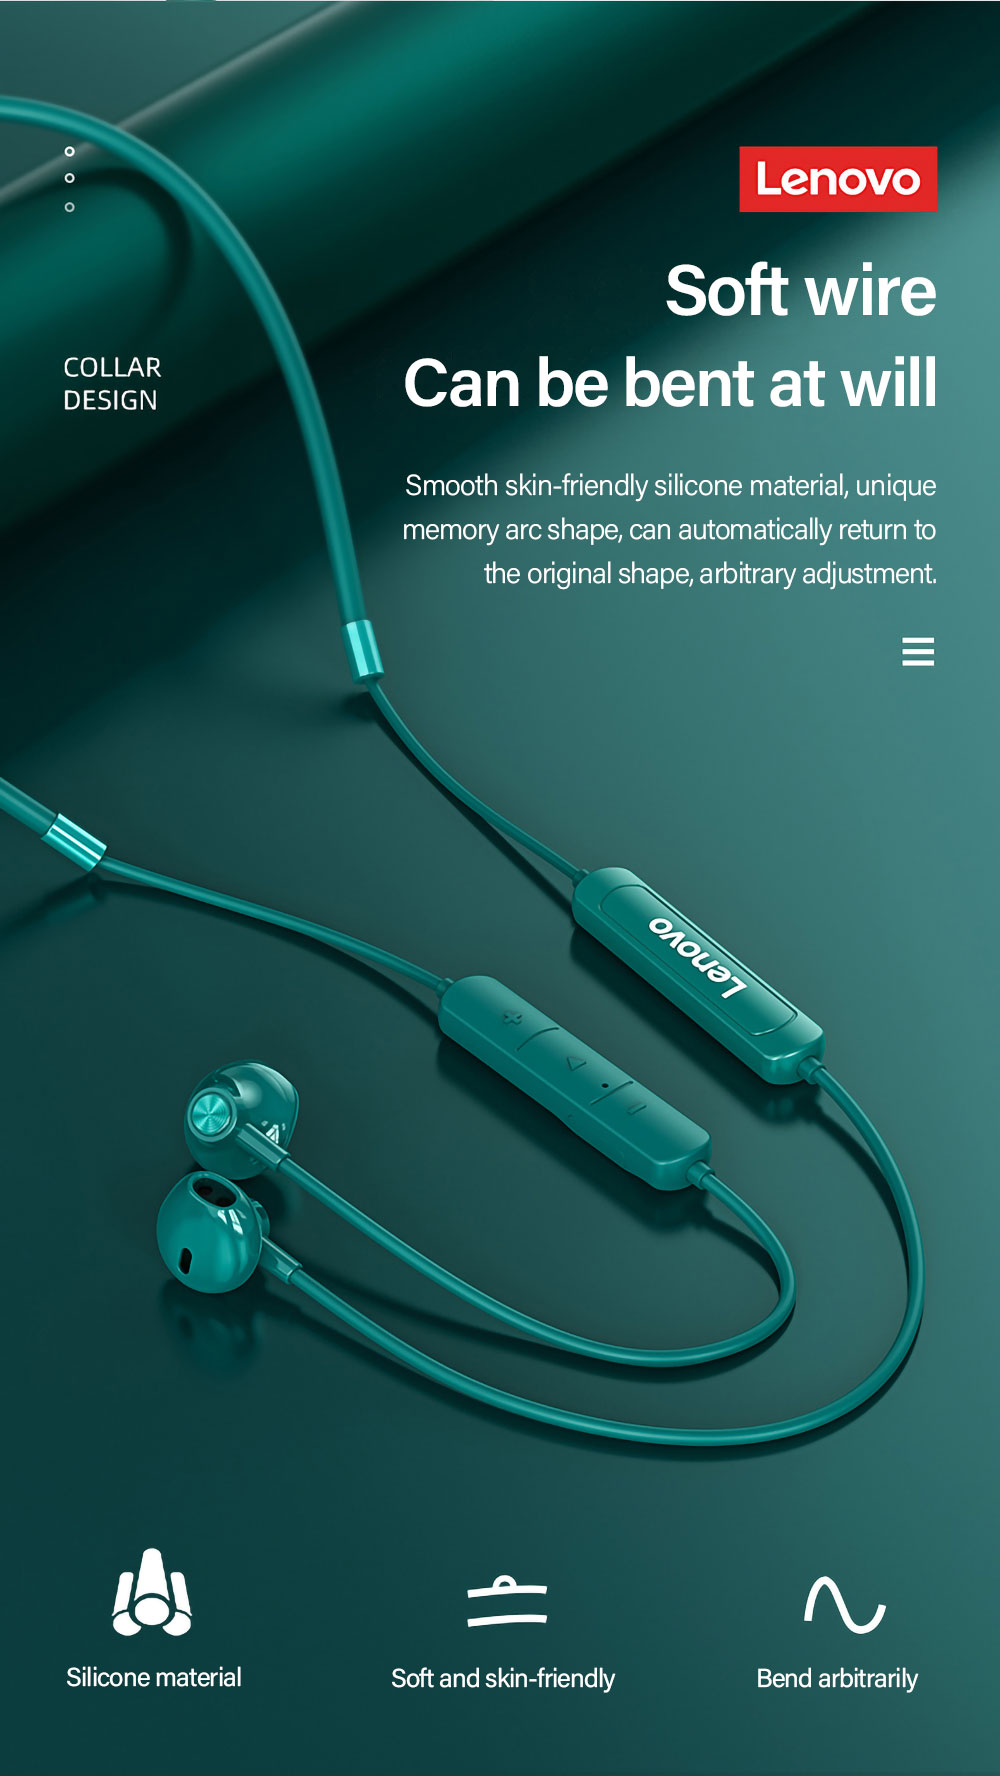 Lenovo SH1 BT5.0 Wireless Headphones Sports Headphones With Double Denovate / Dynamic Drive / IPX5 Waterproof / Ergonomic Music Running Long Runless Waiting Wireless Bluetooth TWS Headphones Compatible With IOS Android - Sea Green